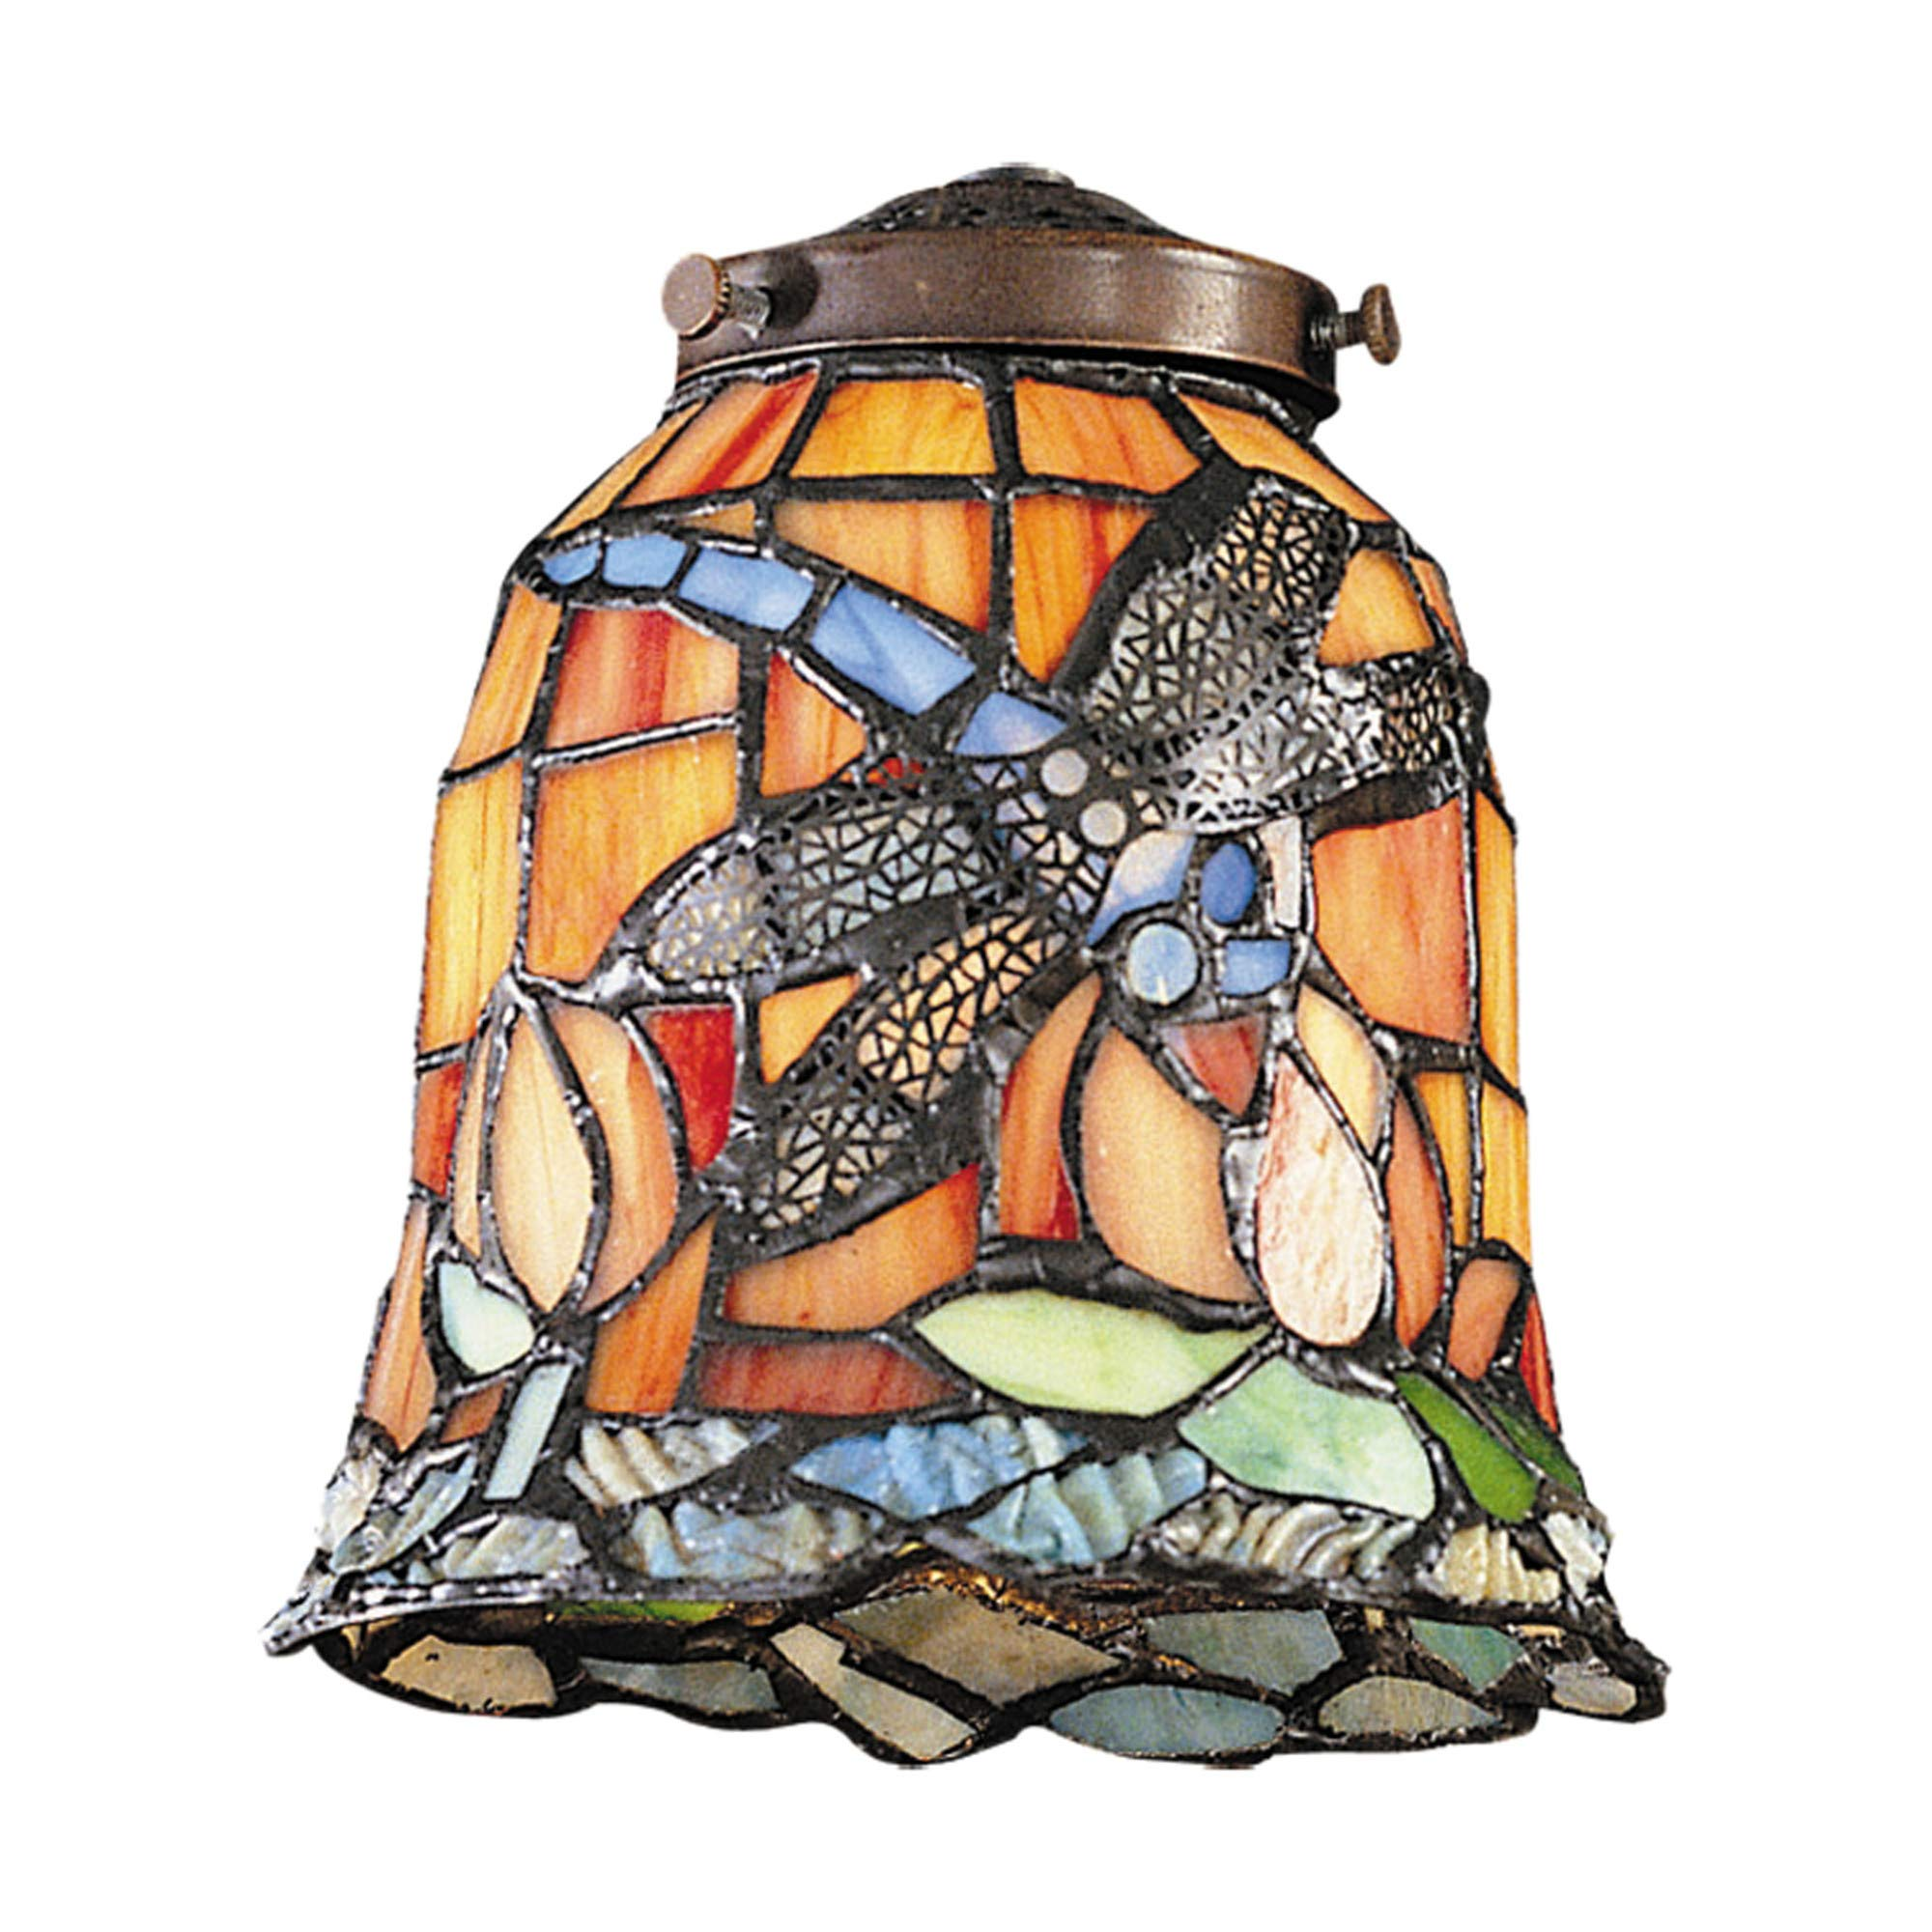 Landmark Lighting 999-12 Tiffany Single Replacement Shade from the Mix-N-Match Collection, Multi Colored Glass